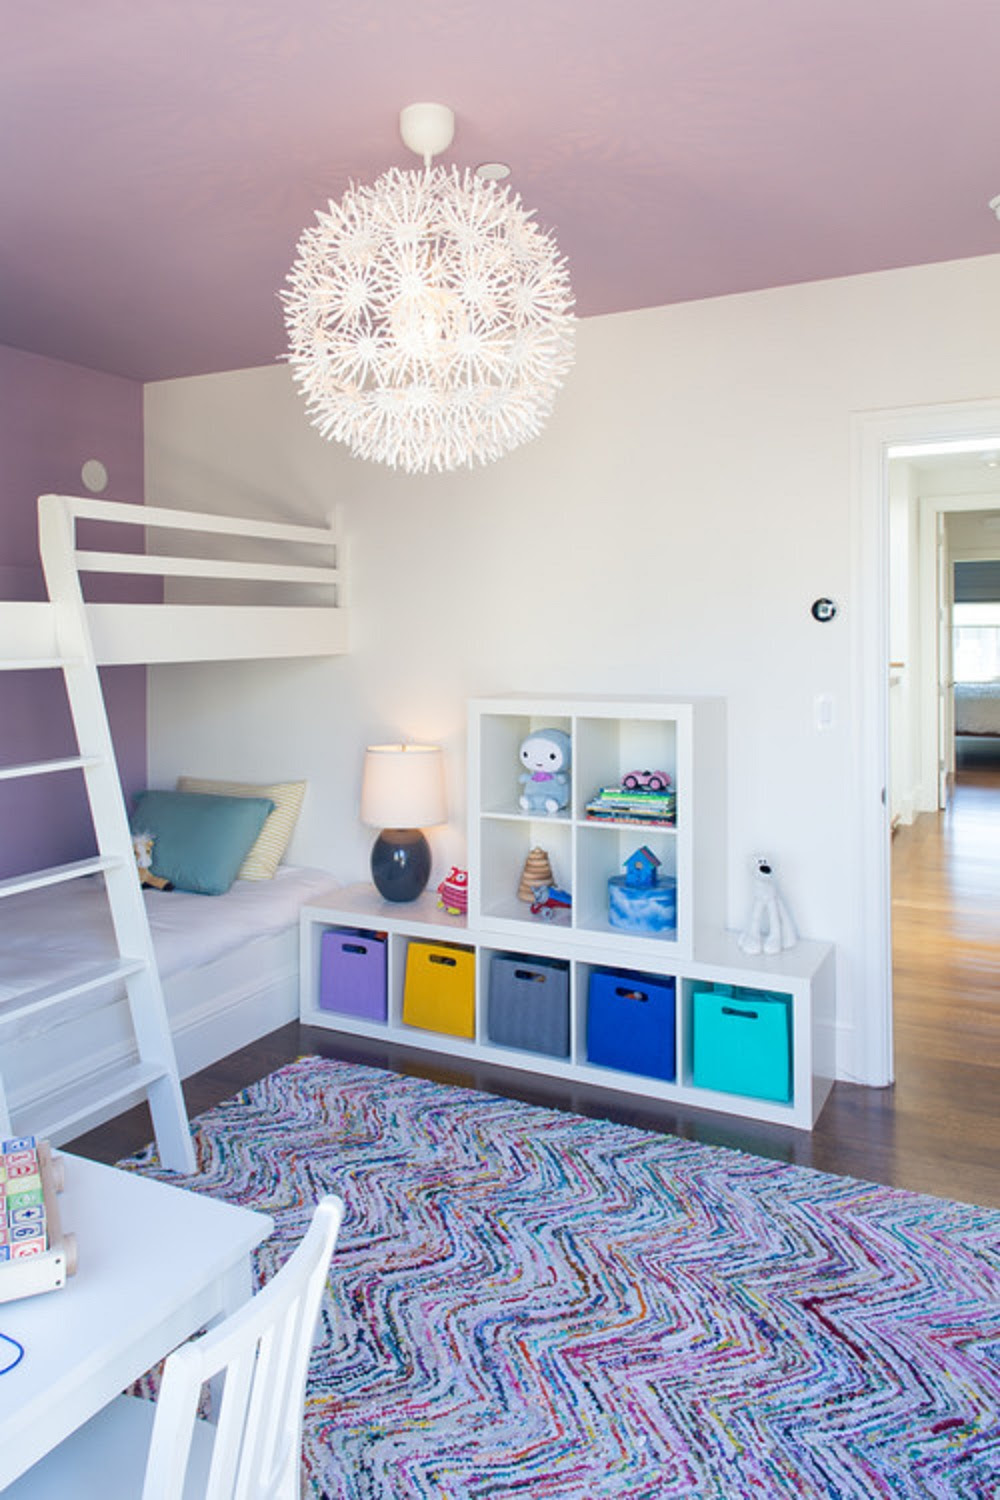 Turn the Lights Down Low - Bedroom Lighting for Any Room ...